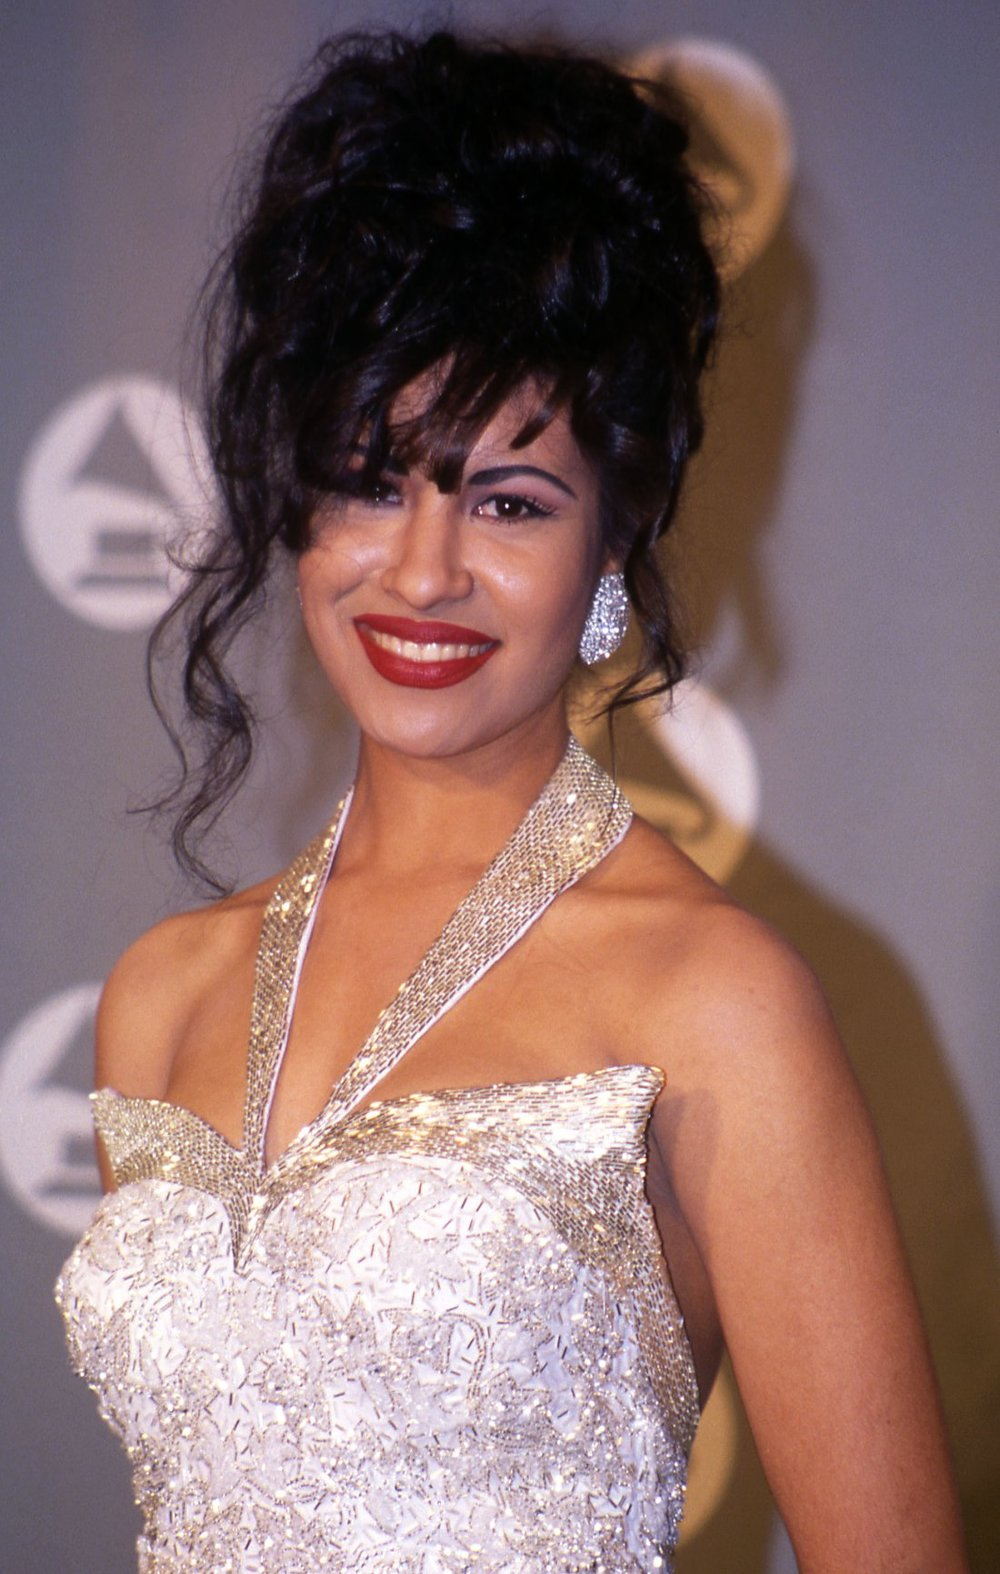 Singer Selena Quintanilla (courtesy of Time Magazine).  Vinnie Zuffante/Getty Images